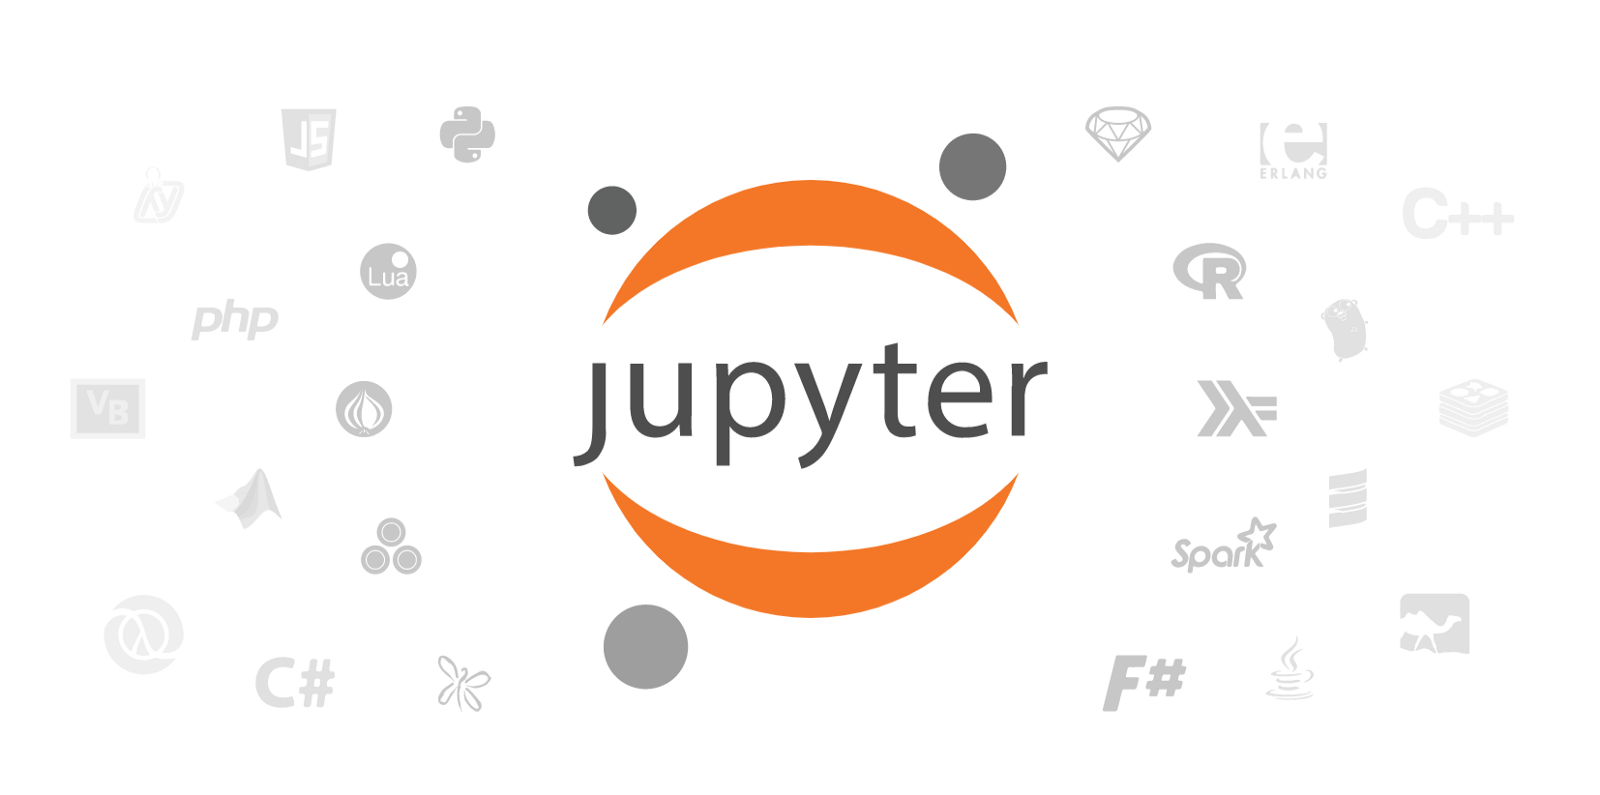 Ejercicio practico de Machine Learning con Jupyter Notebooks, Anaconda y Python 3